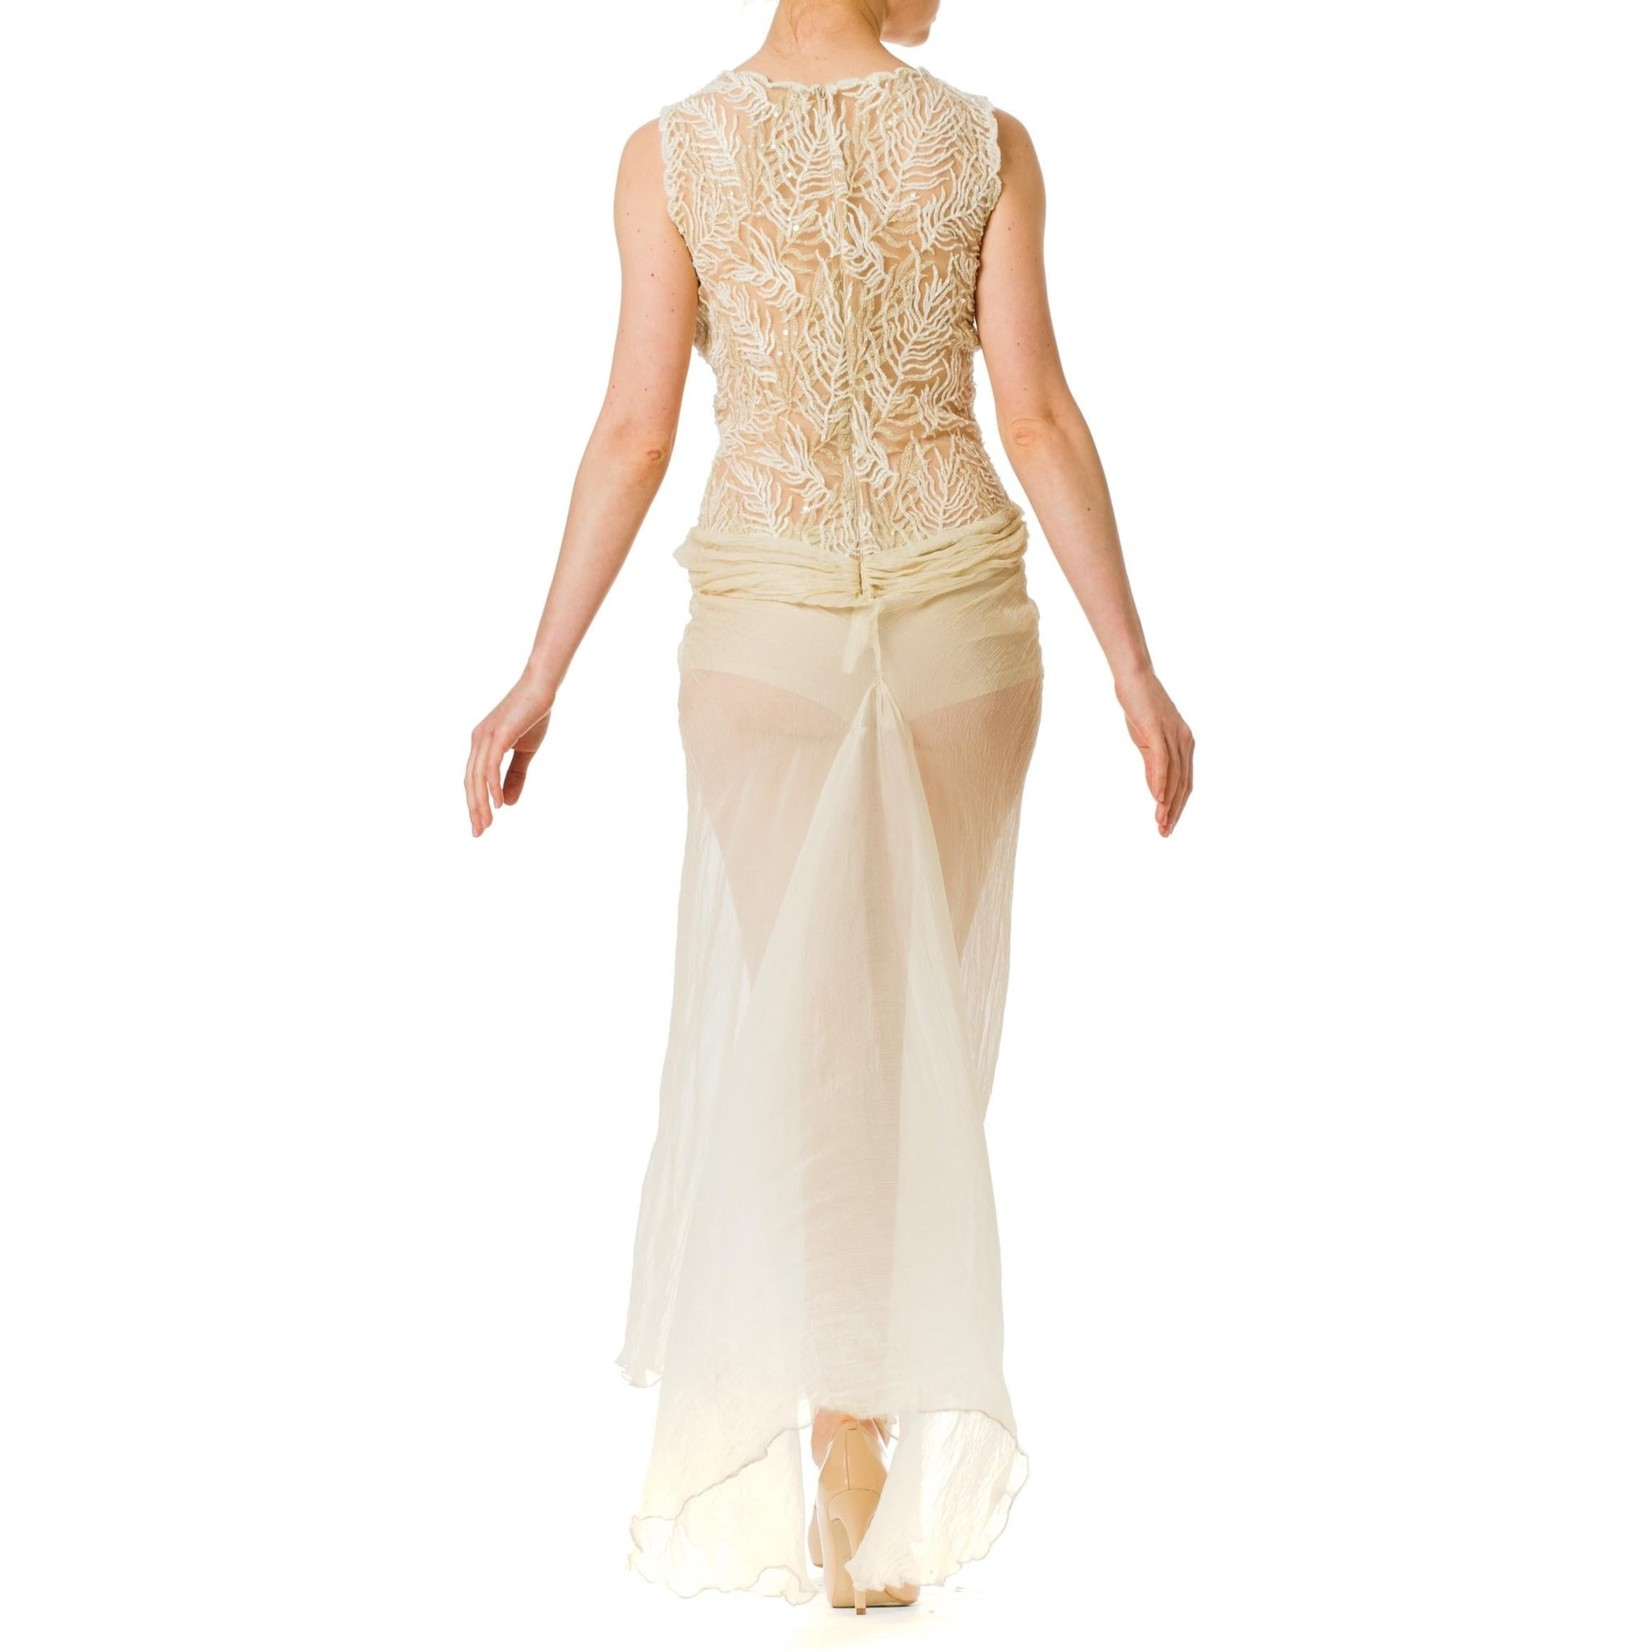 Morphew 1980S Off White Beaded Silk Mousseline & Gold Metallic Embroidered Lace Gown